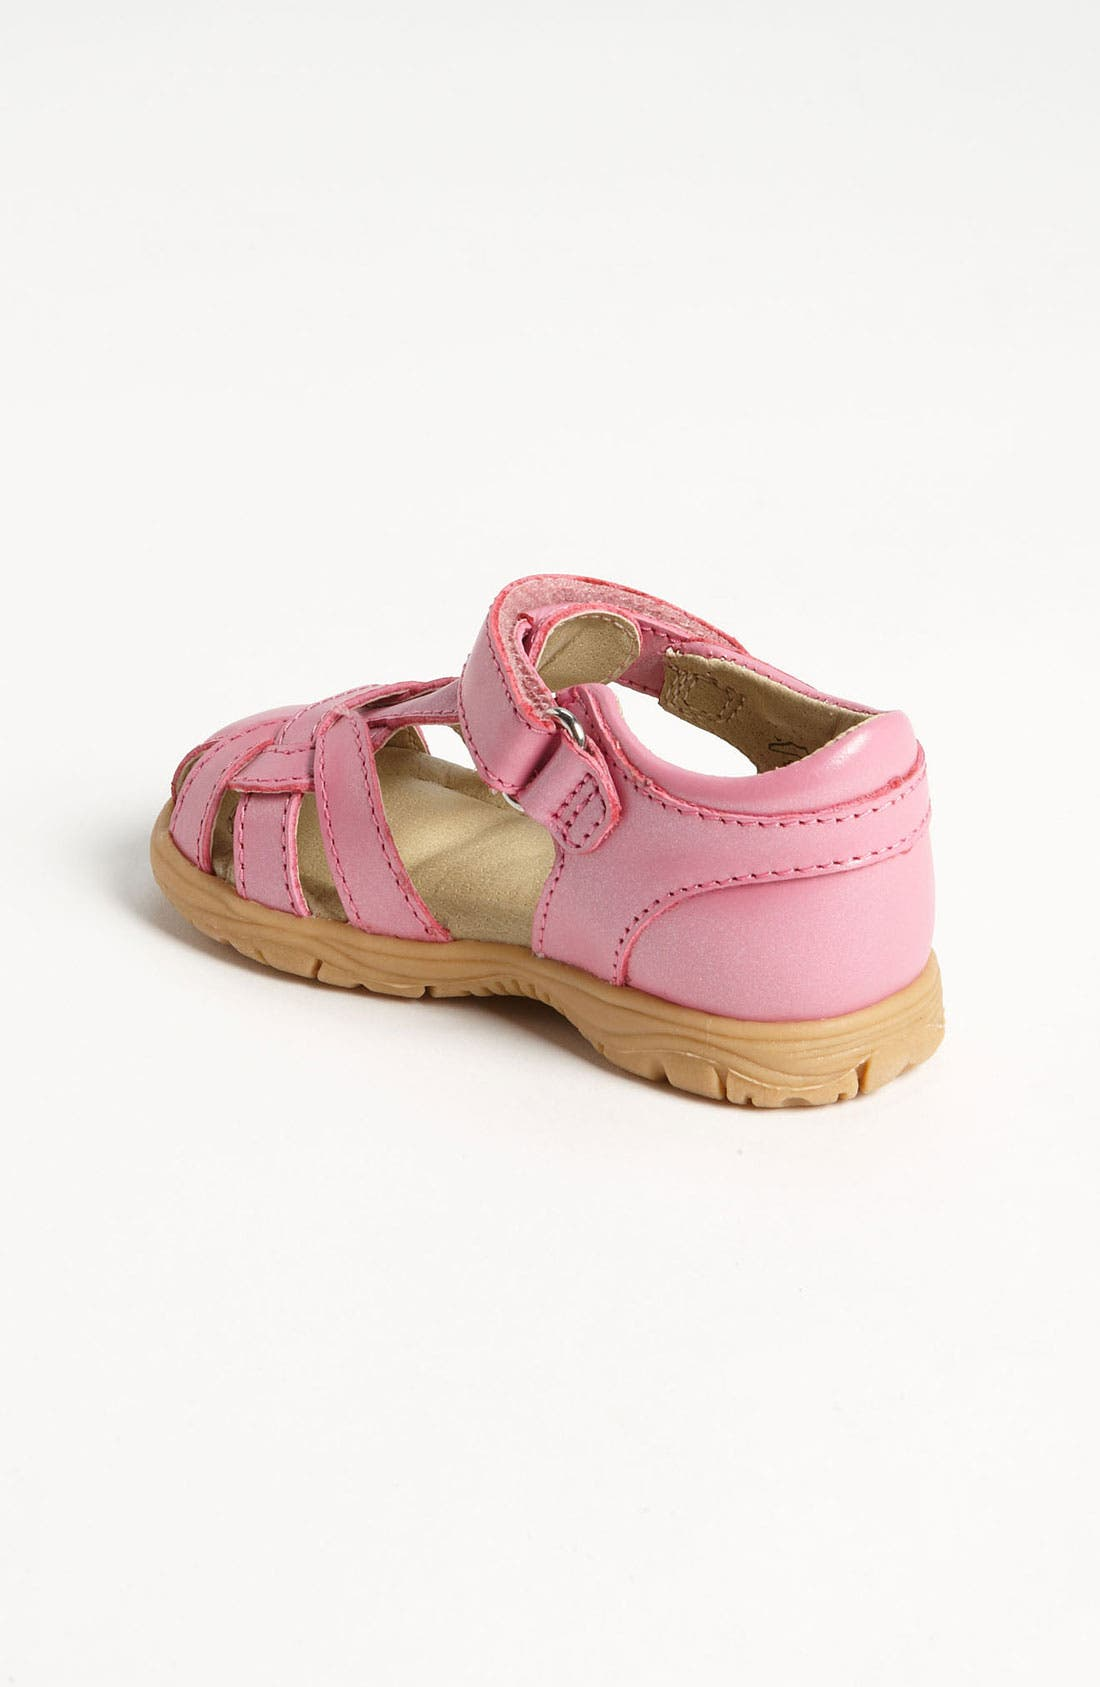 Alternate Image 2  - Umi 'Natalia' Sandal (Baby, Walker & Toddler)